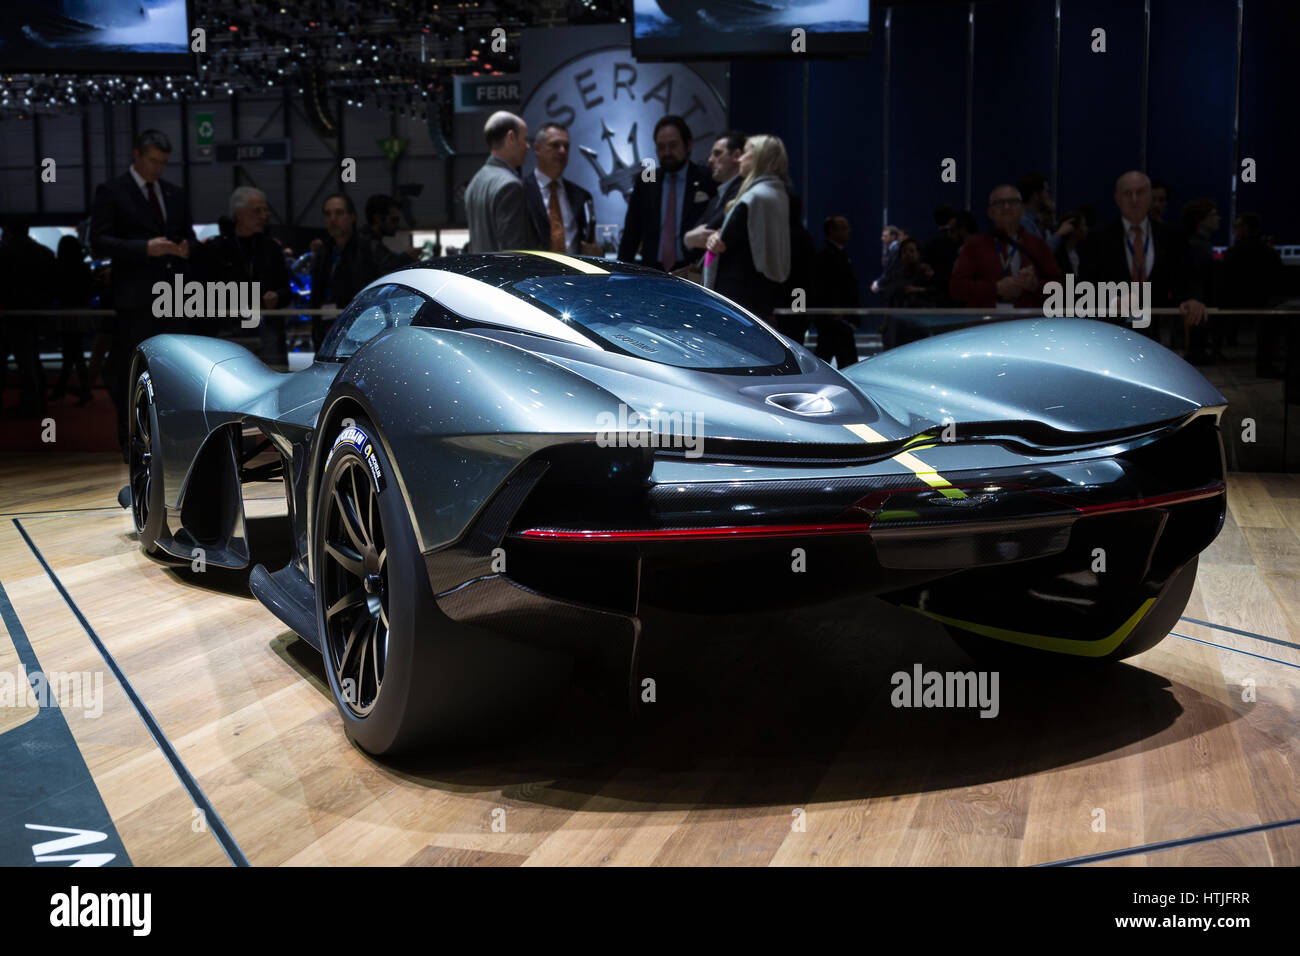 Aston Martin Am Rb Valkyrie At The Th International Geneva Motor Htjfrr